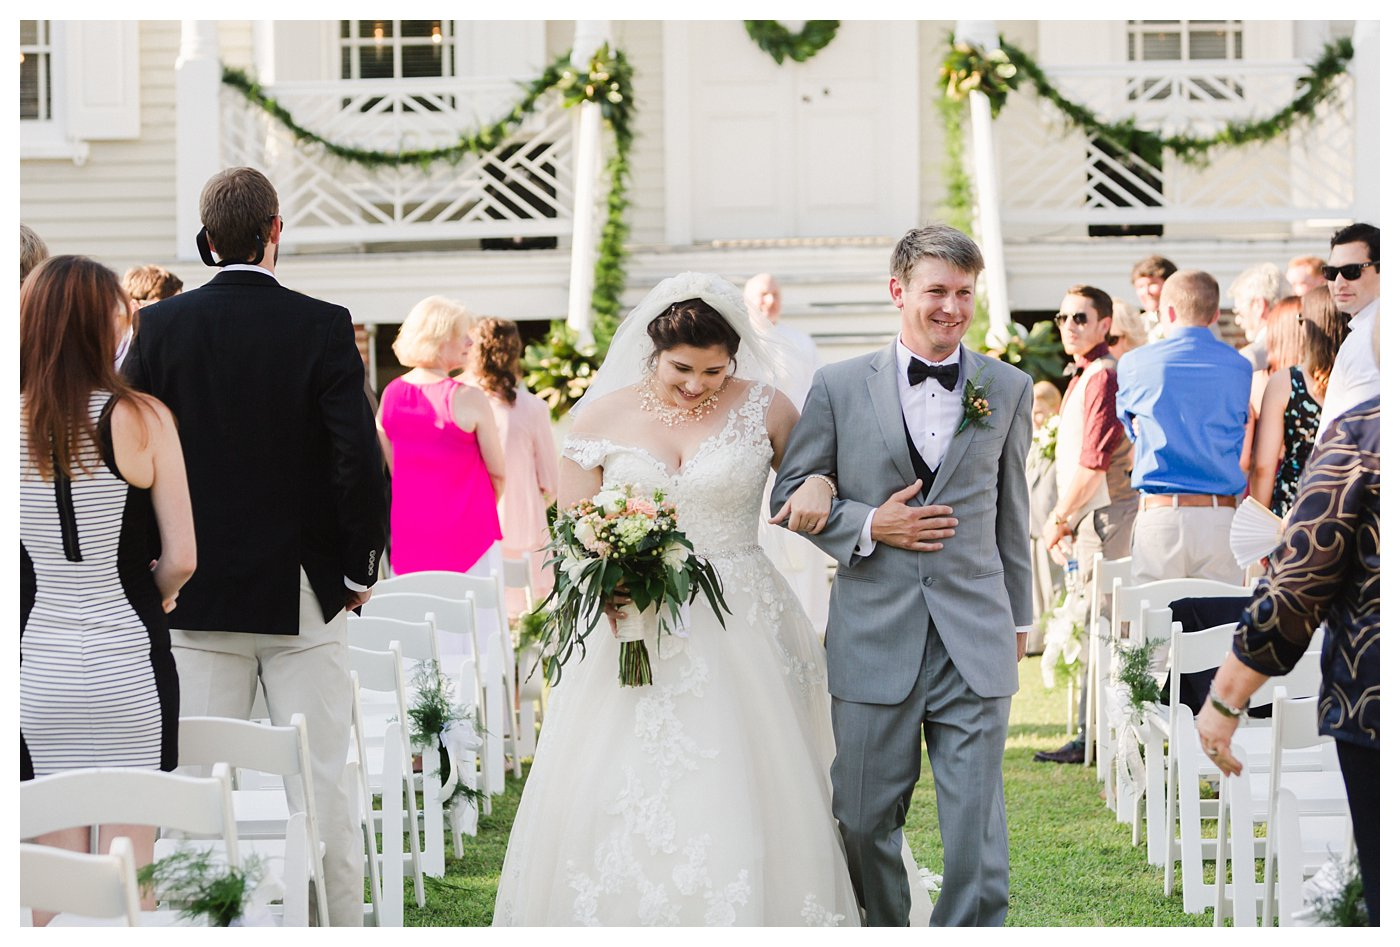 Historic_Hope_Plantation_Wedding_Photography_Sage_Summer_Outdoor_Windsor_NC_0032.jpg